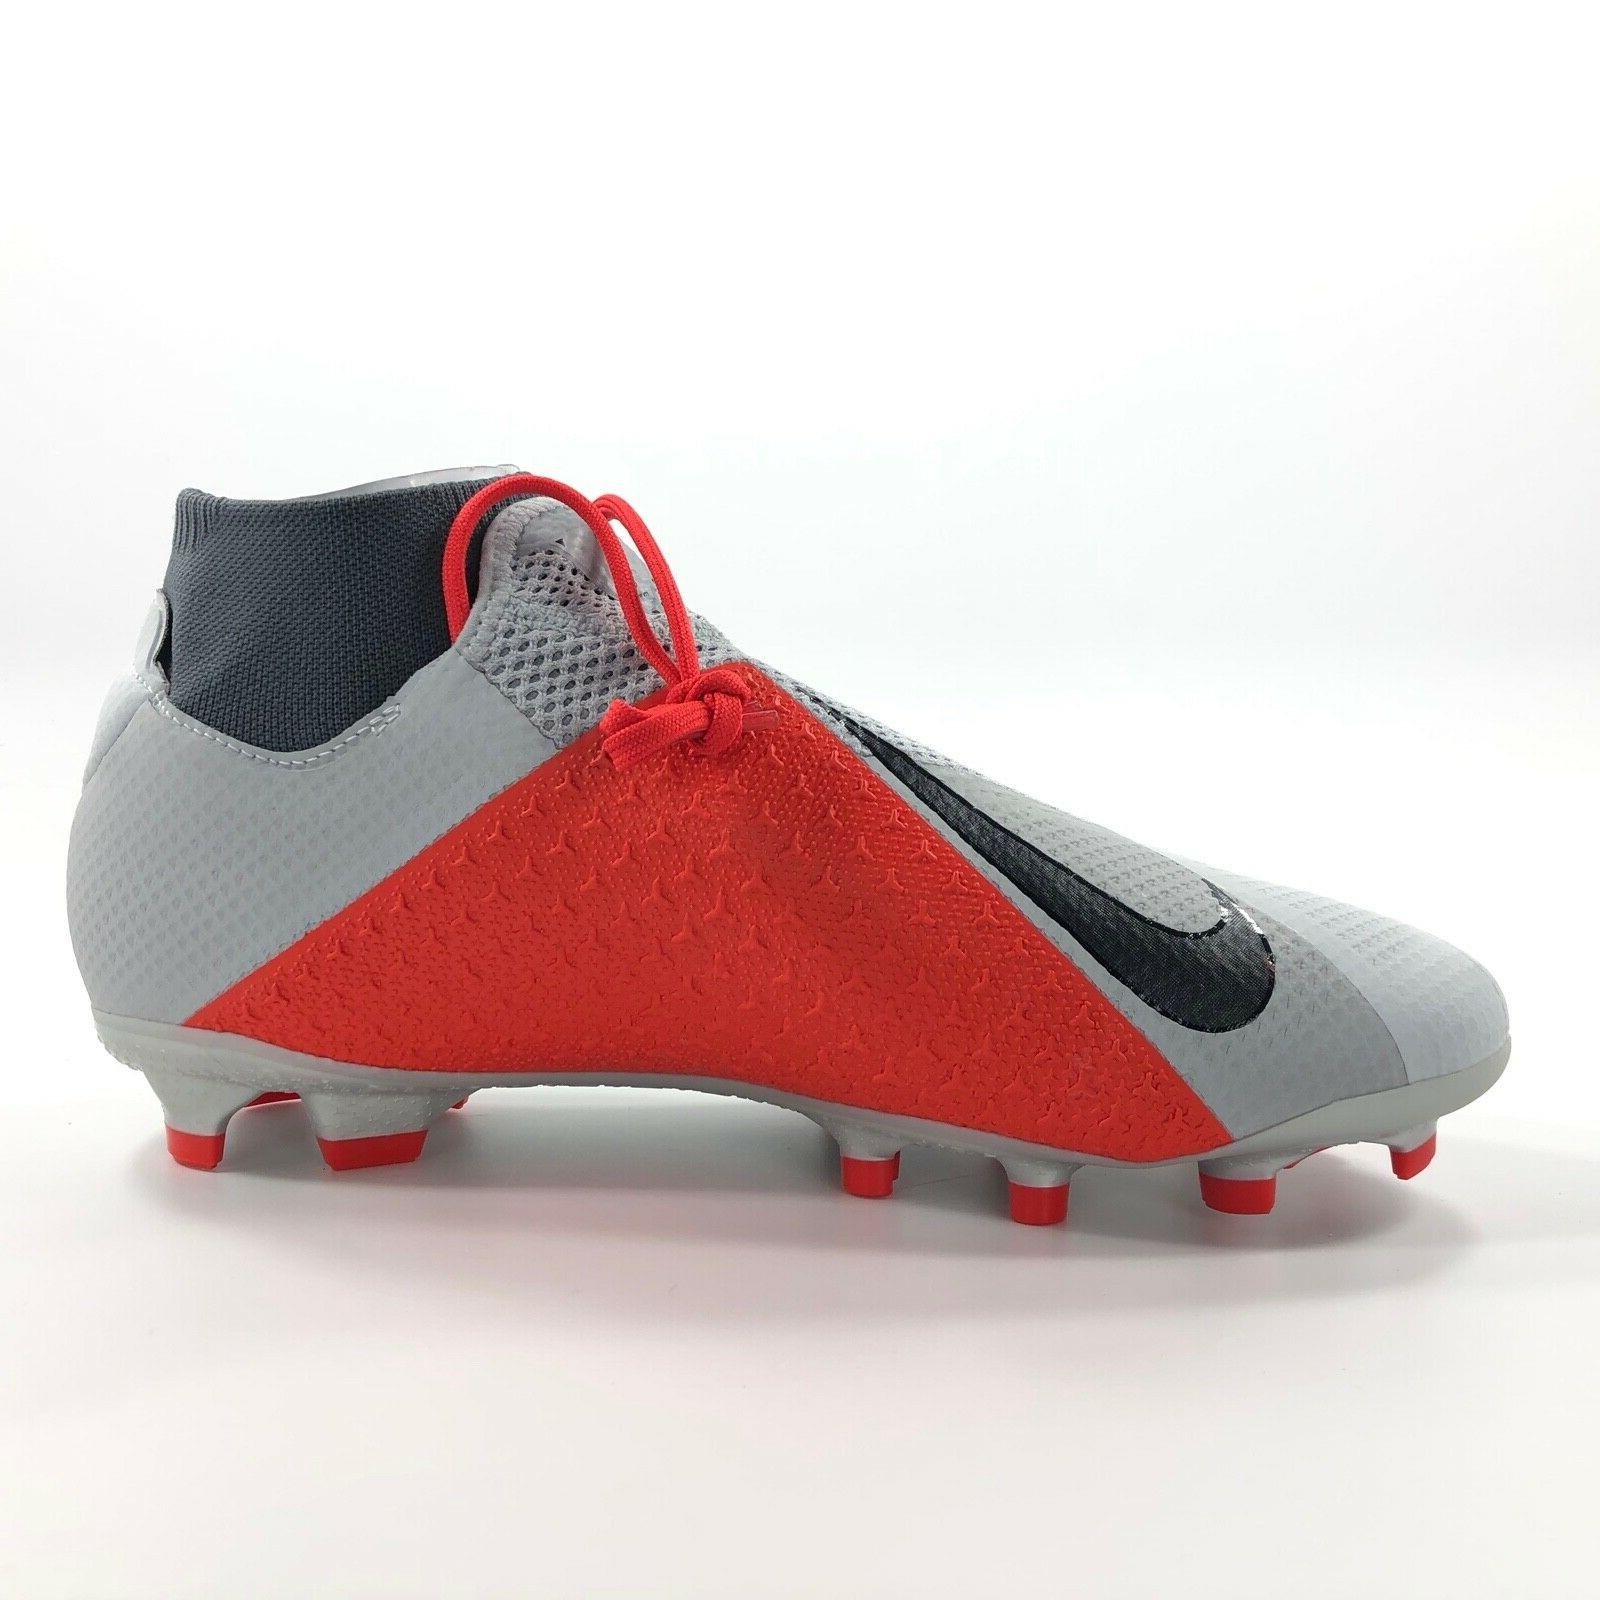 Nike FG Soccer Cleats Grey Black Red Men's